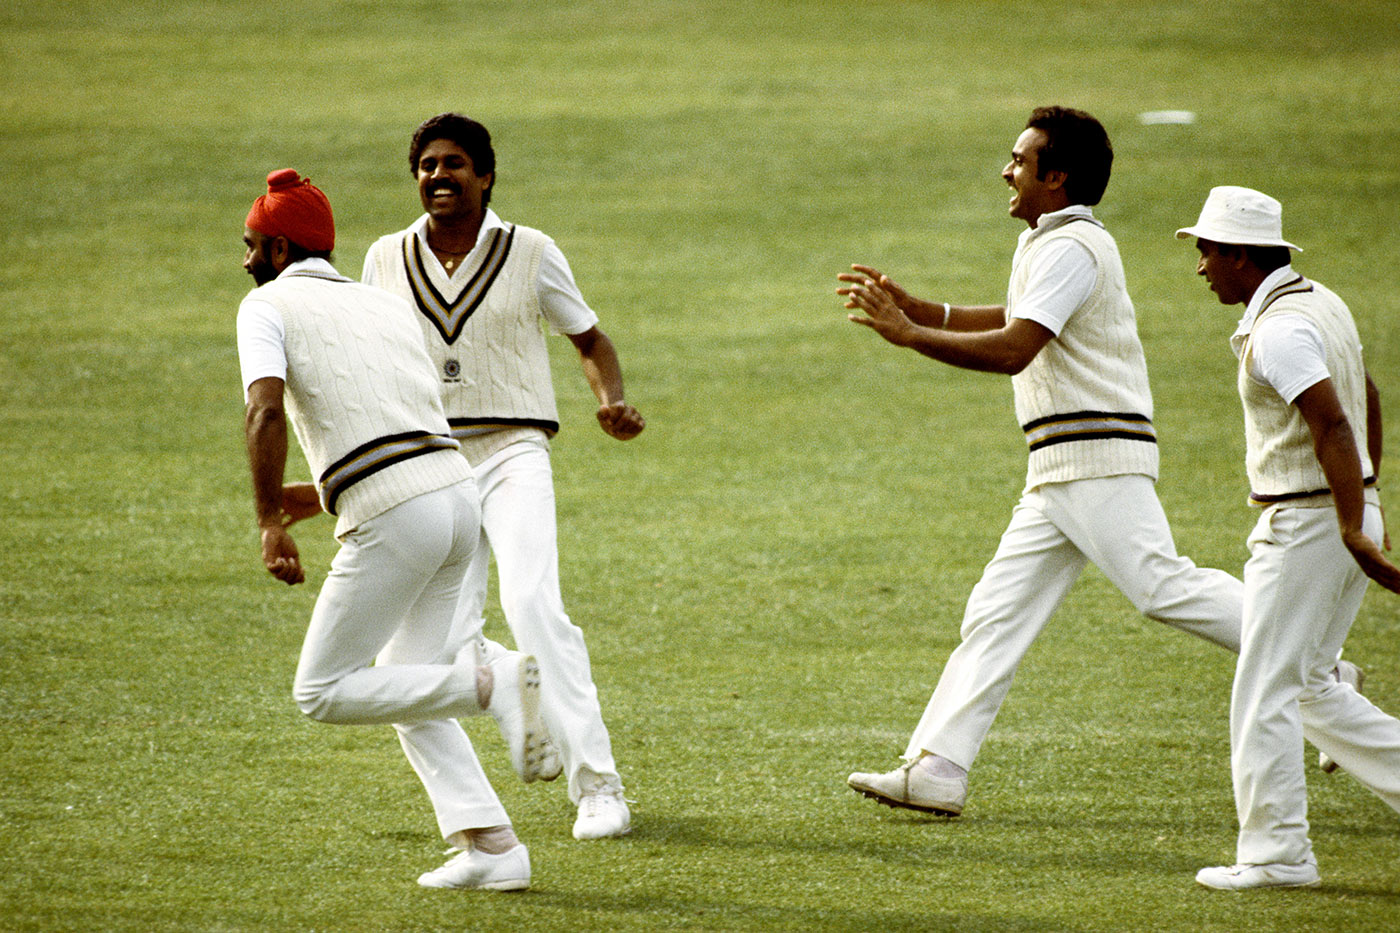 It begins to sink in: Balwinder Sandhu, Kapil, Madan Lal and Sunil Gavaskar after the fall of the last West Indies wicket in the 1983 World Cup final